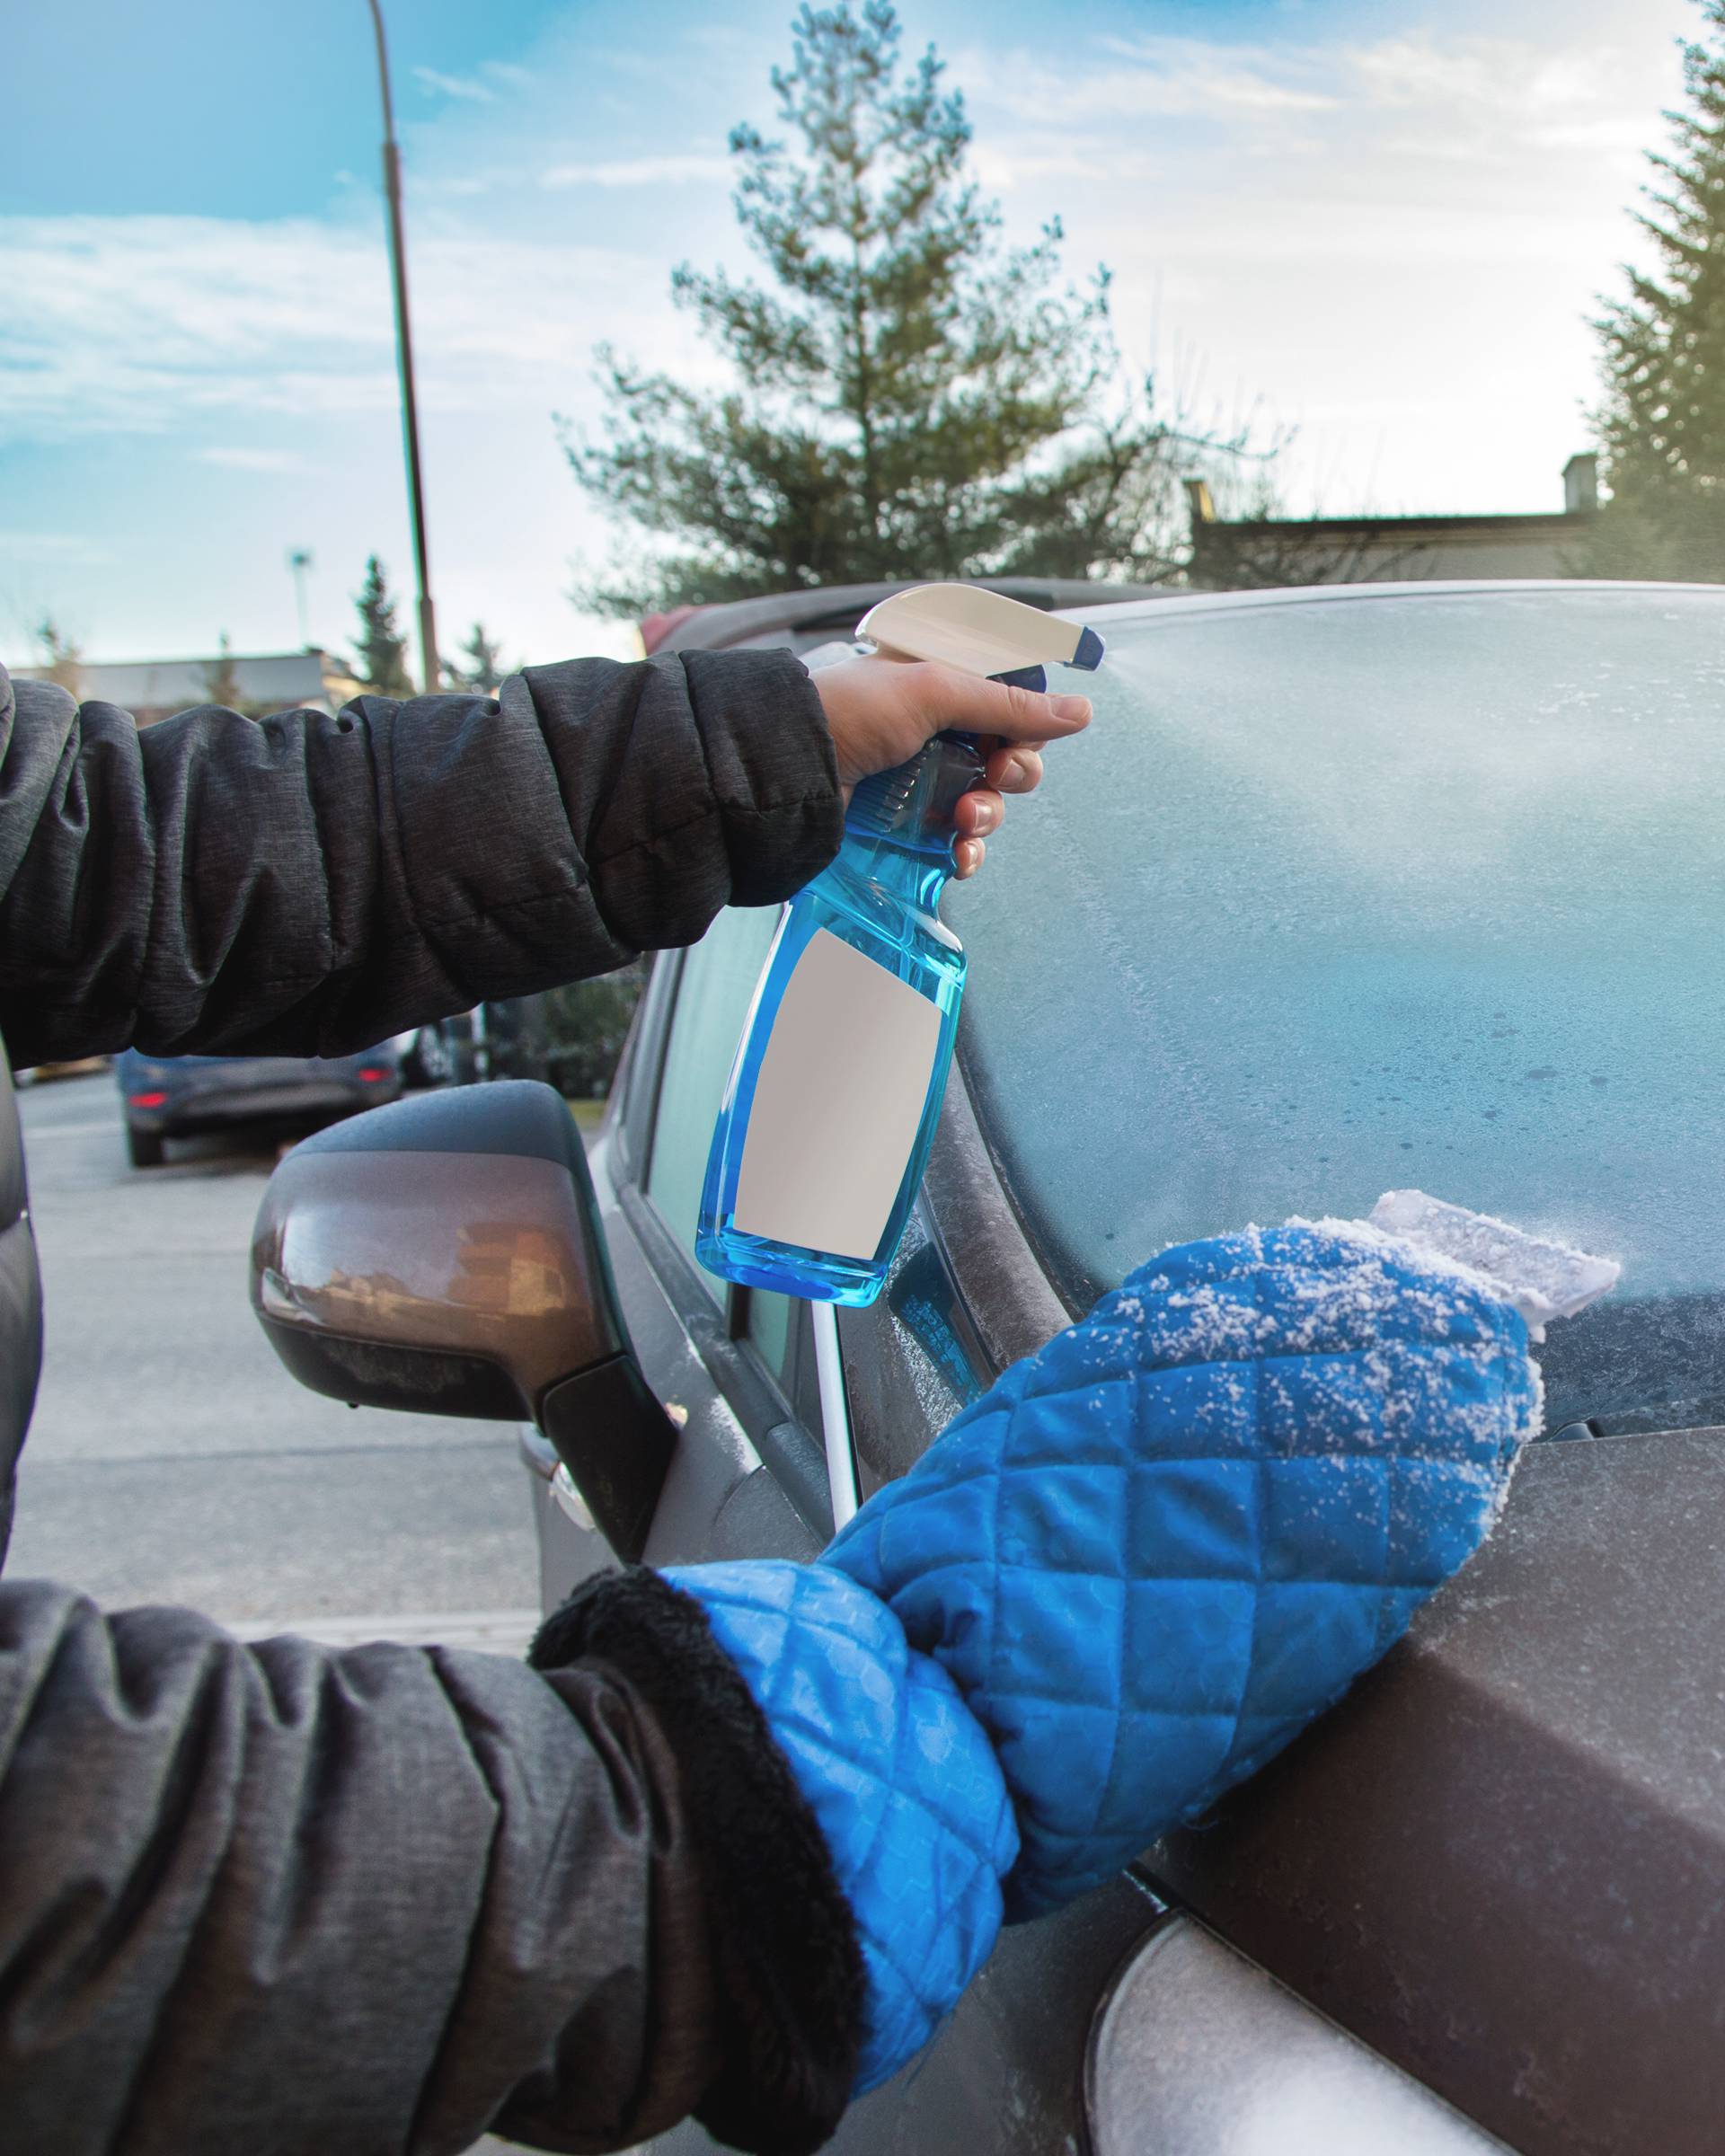 Man uses defroster spray to remove frost